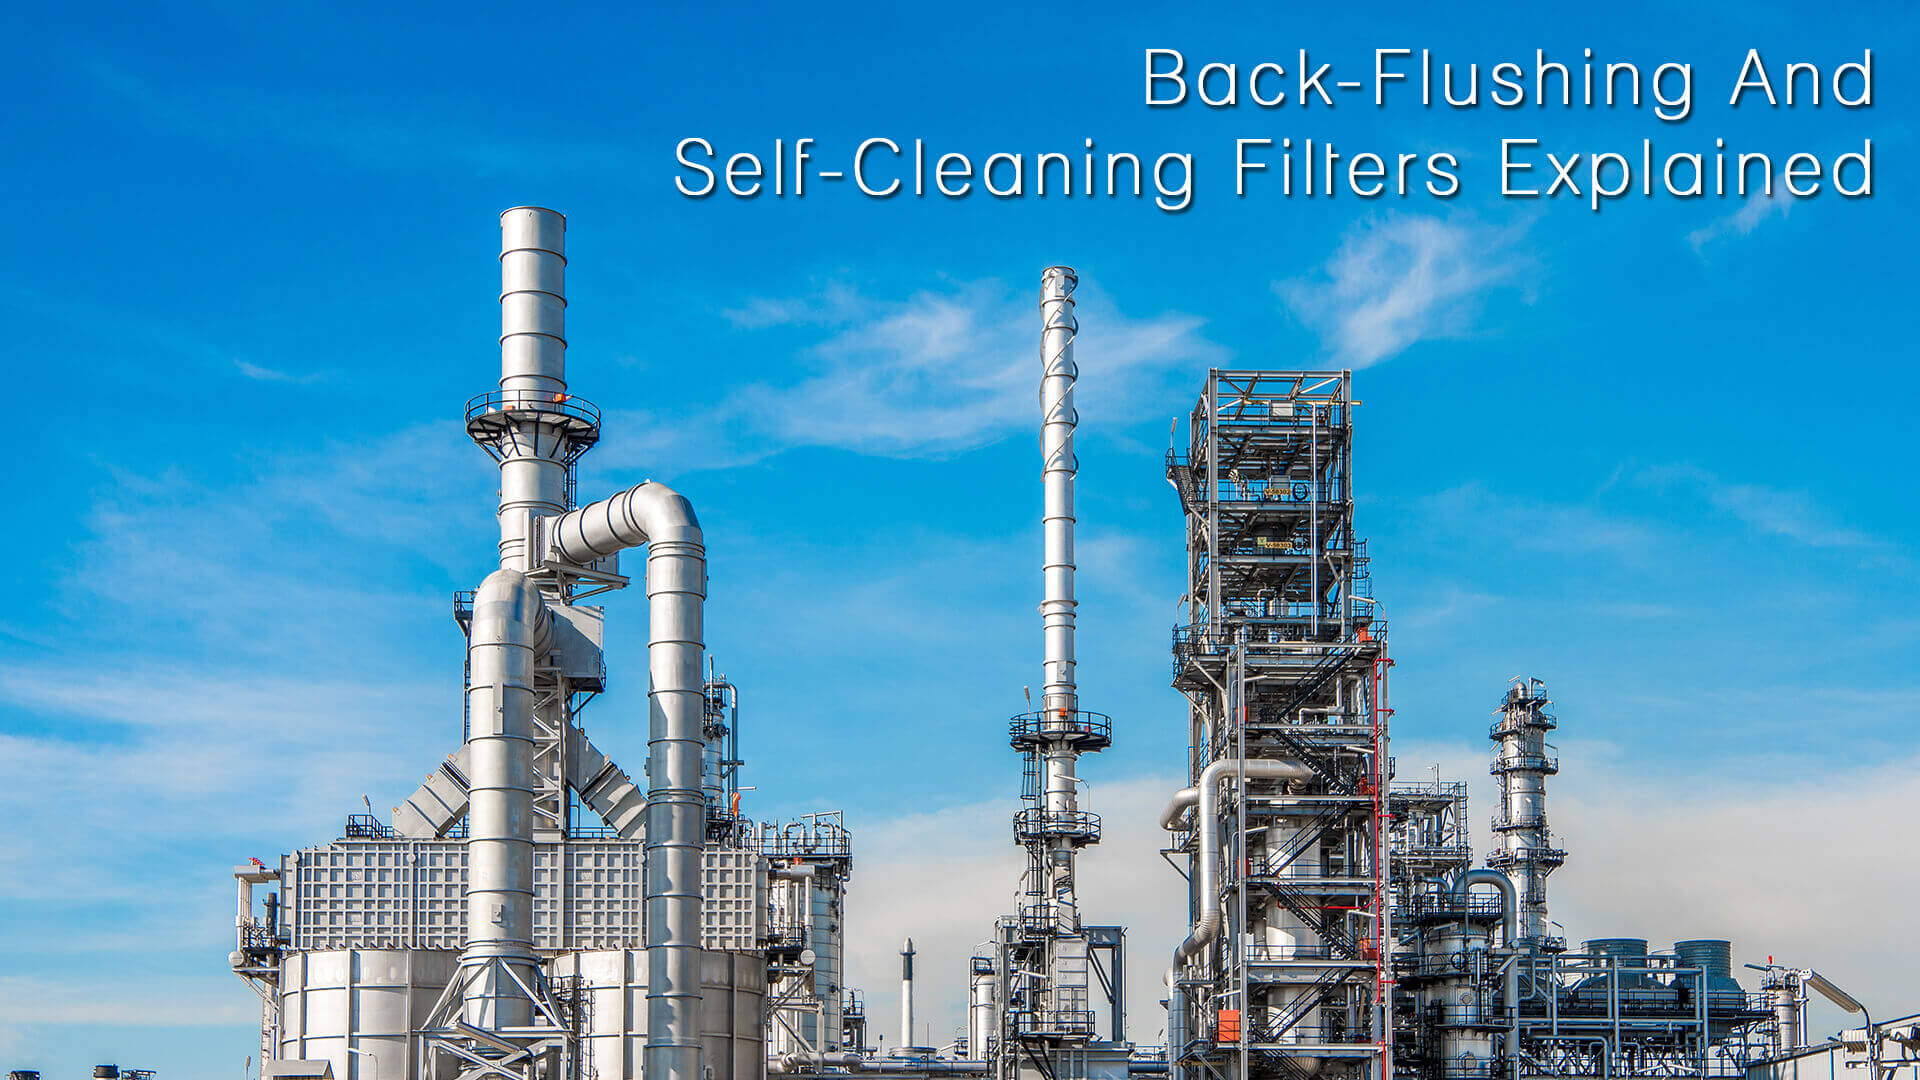 Back-Flushing And Self-Cleaning Filters Explained